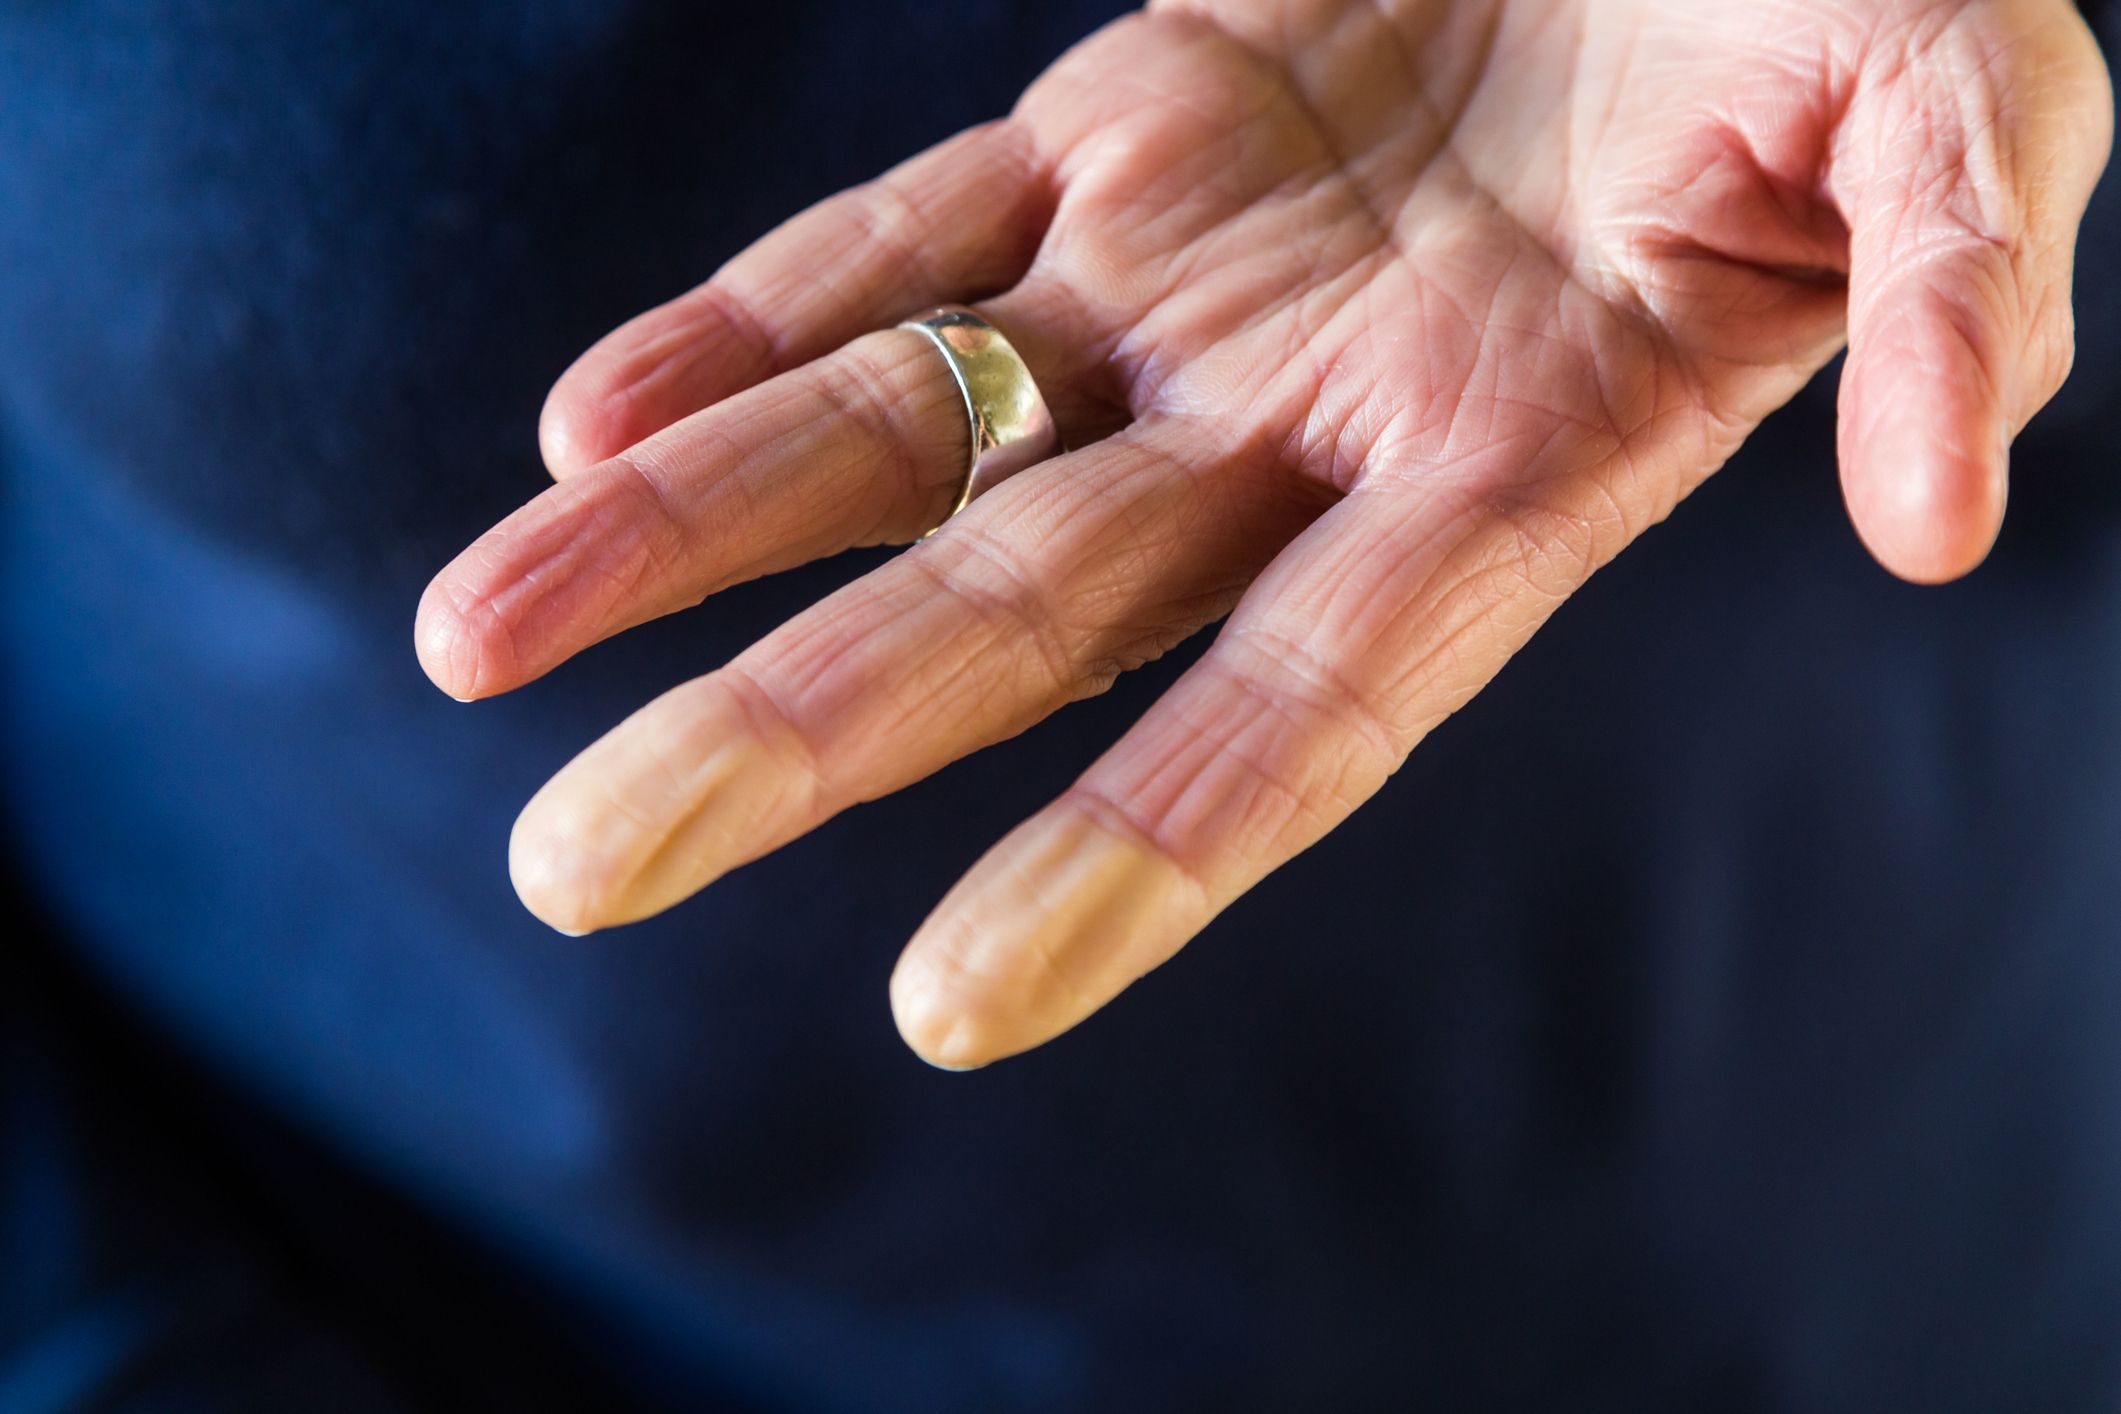 Numbness in Fingers & Hands - 13 Causes of Tingling in Hands